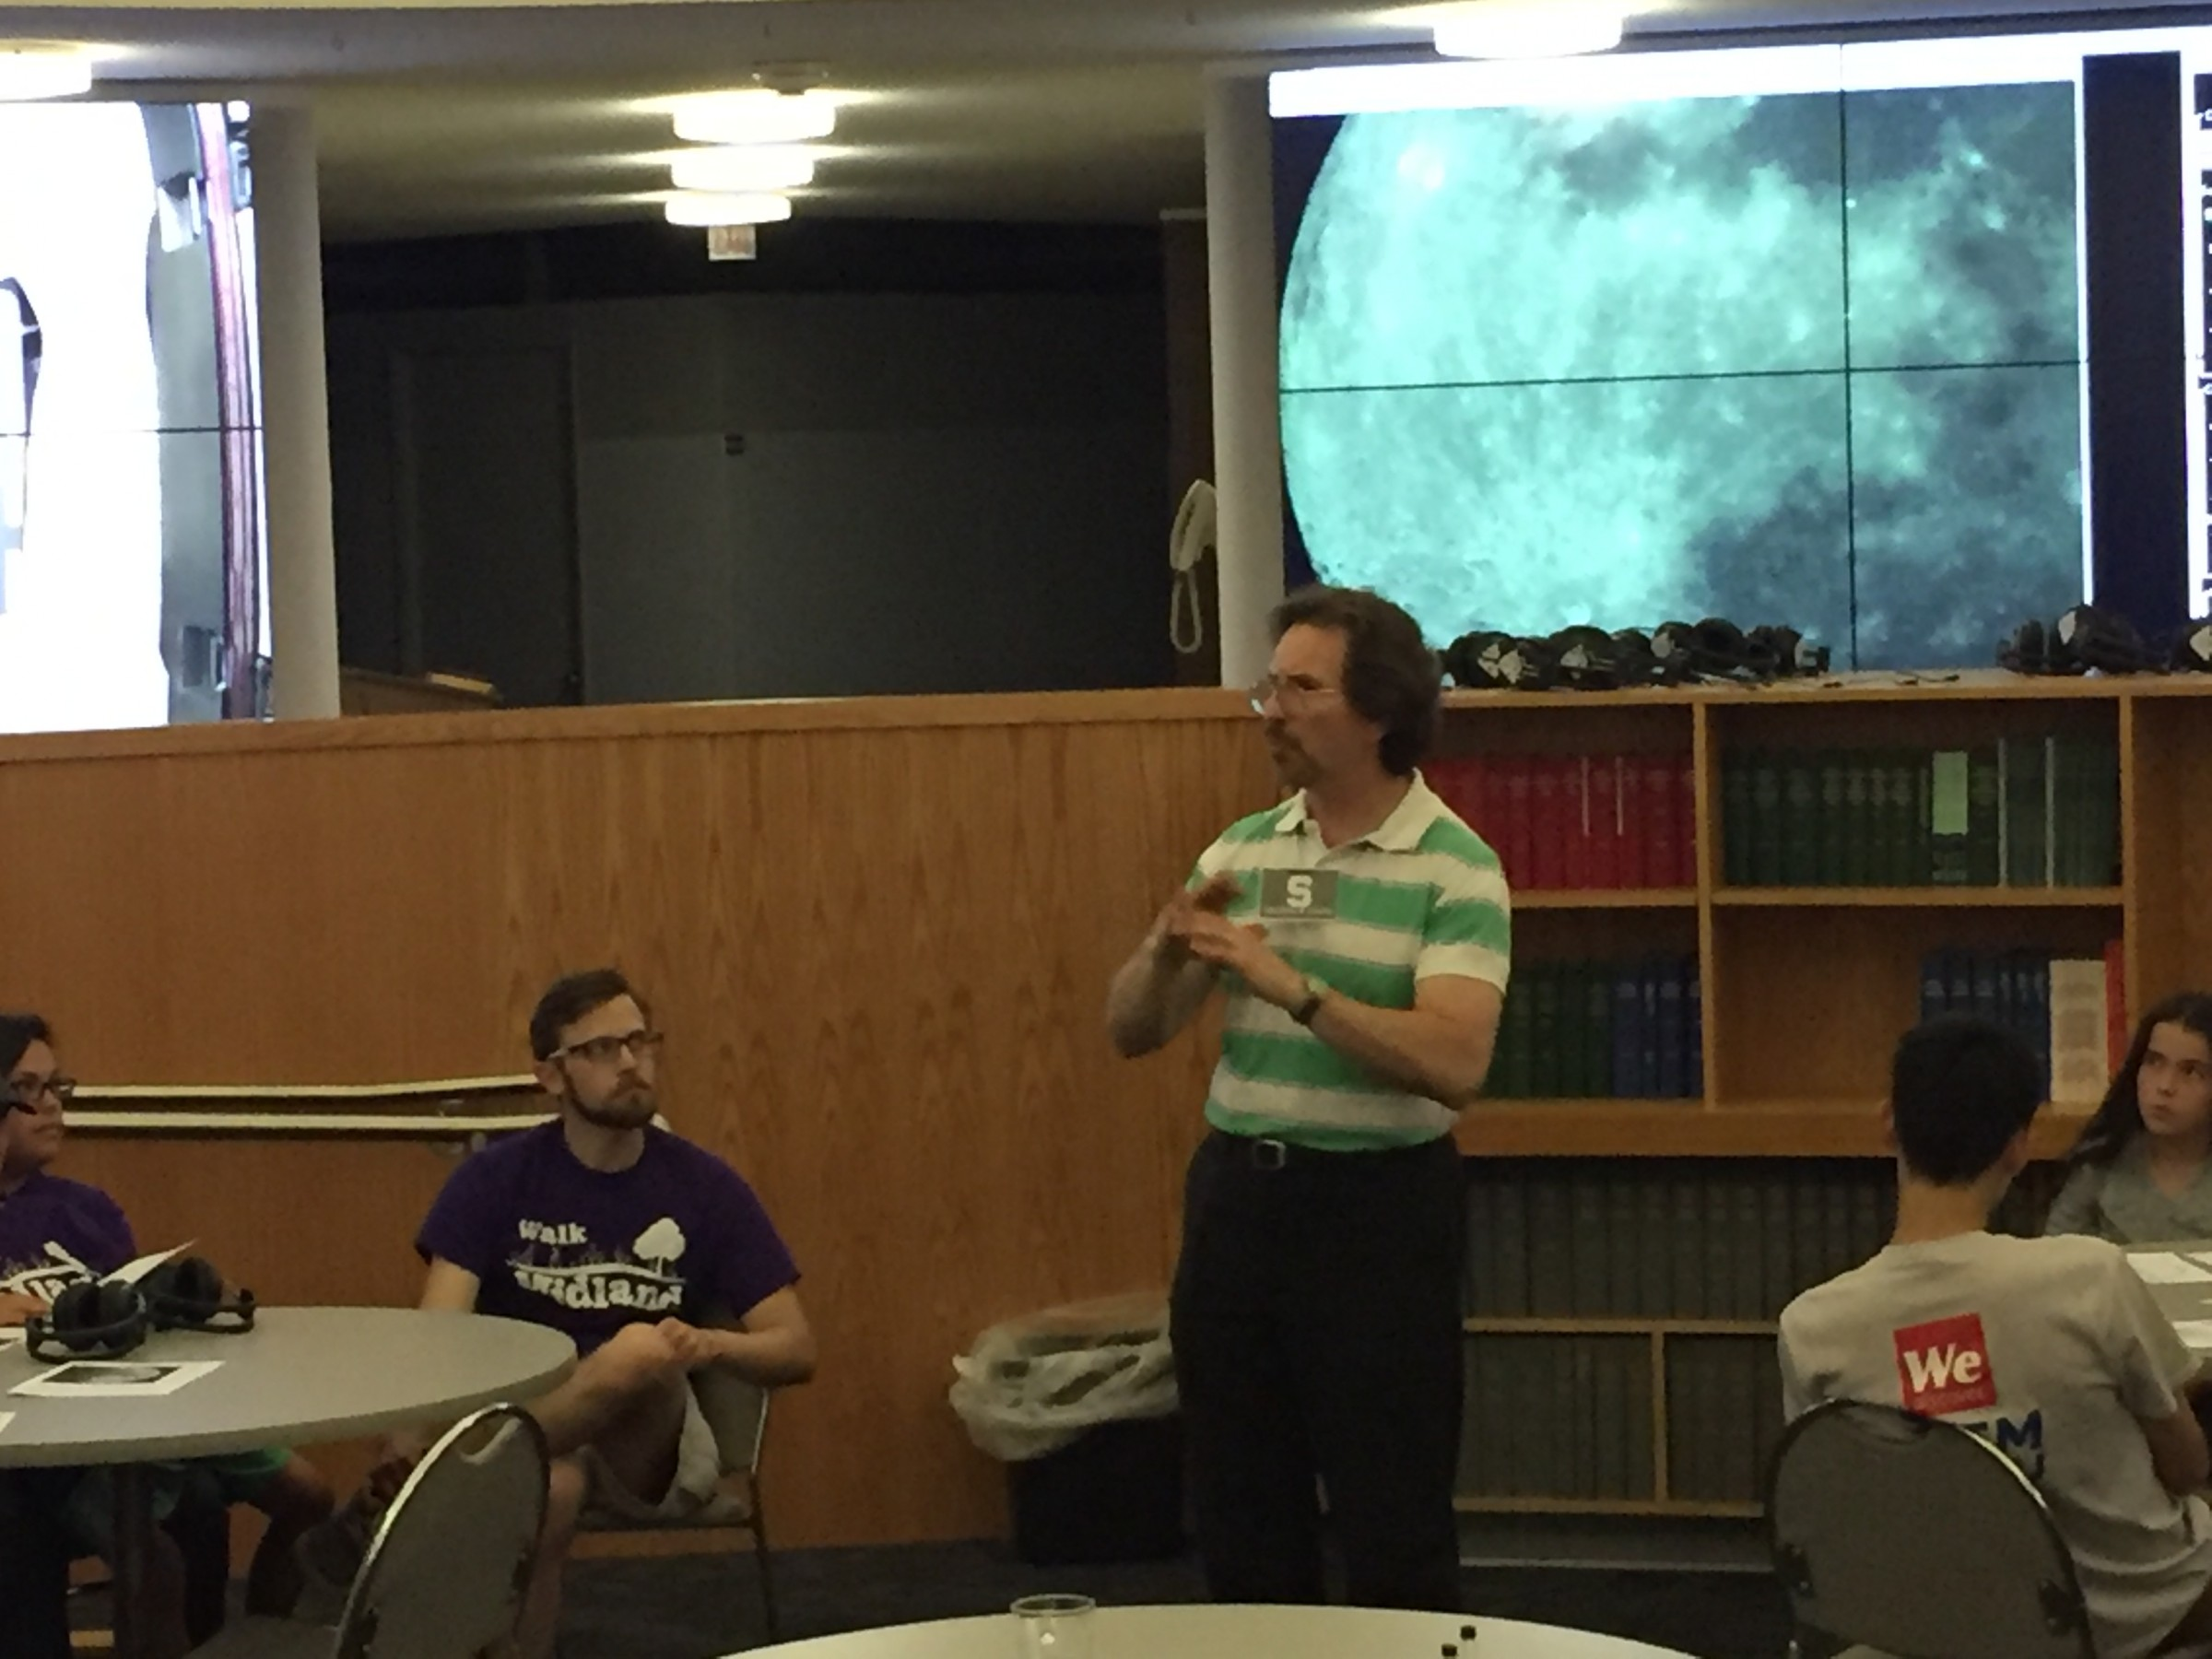 Researcher explains astronomy lesson with moon photo in background